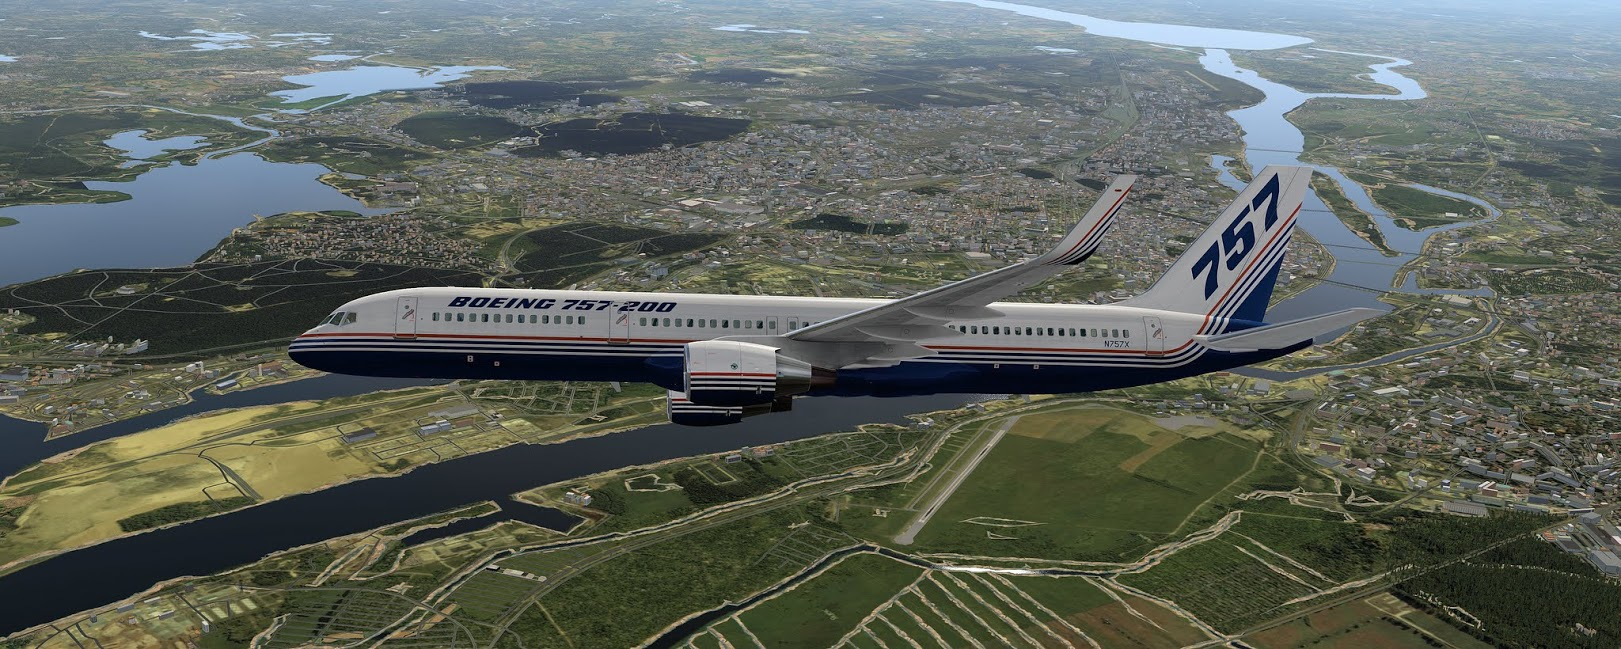 News! - Now Released! : Boeing 757 v2 0 Pro Extended by